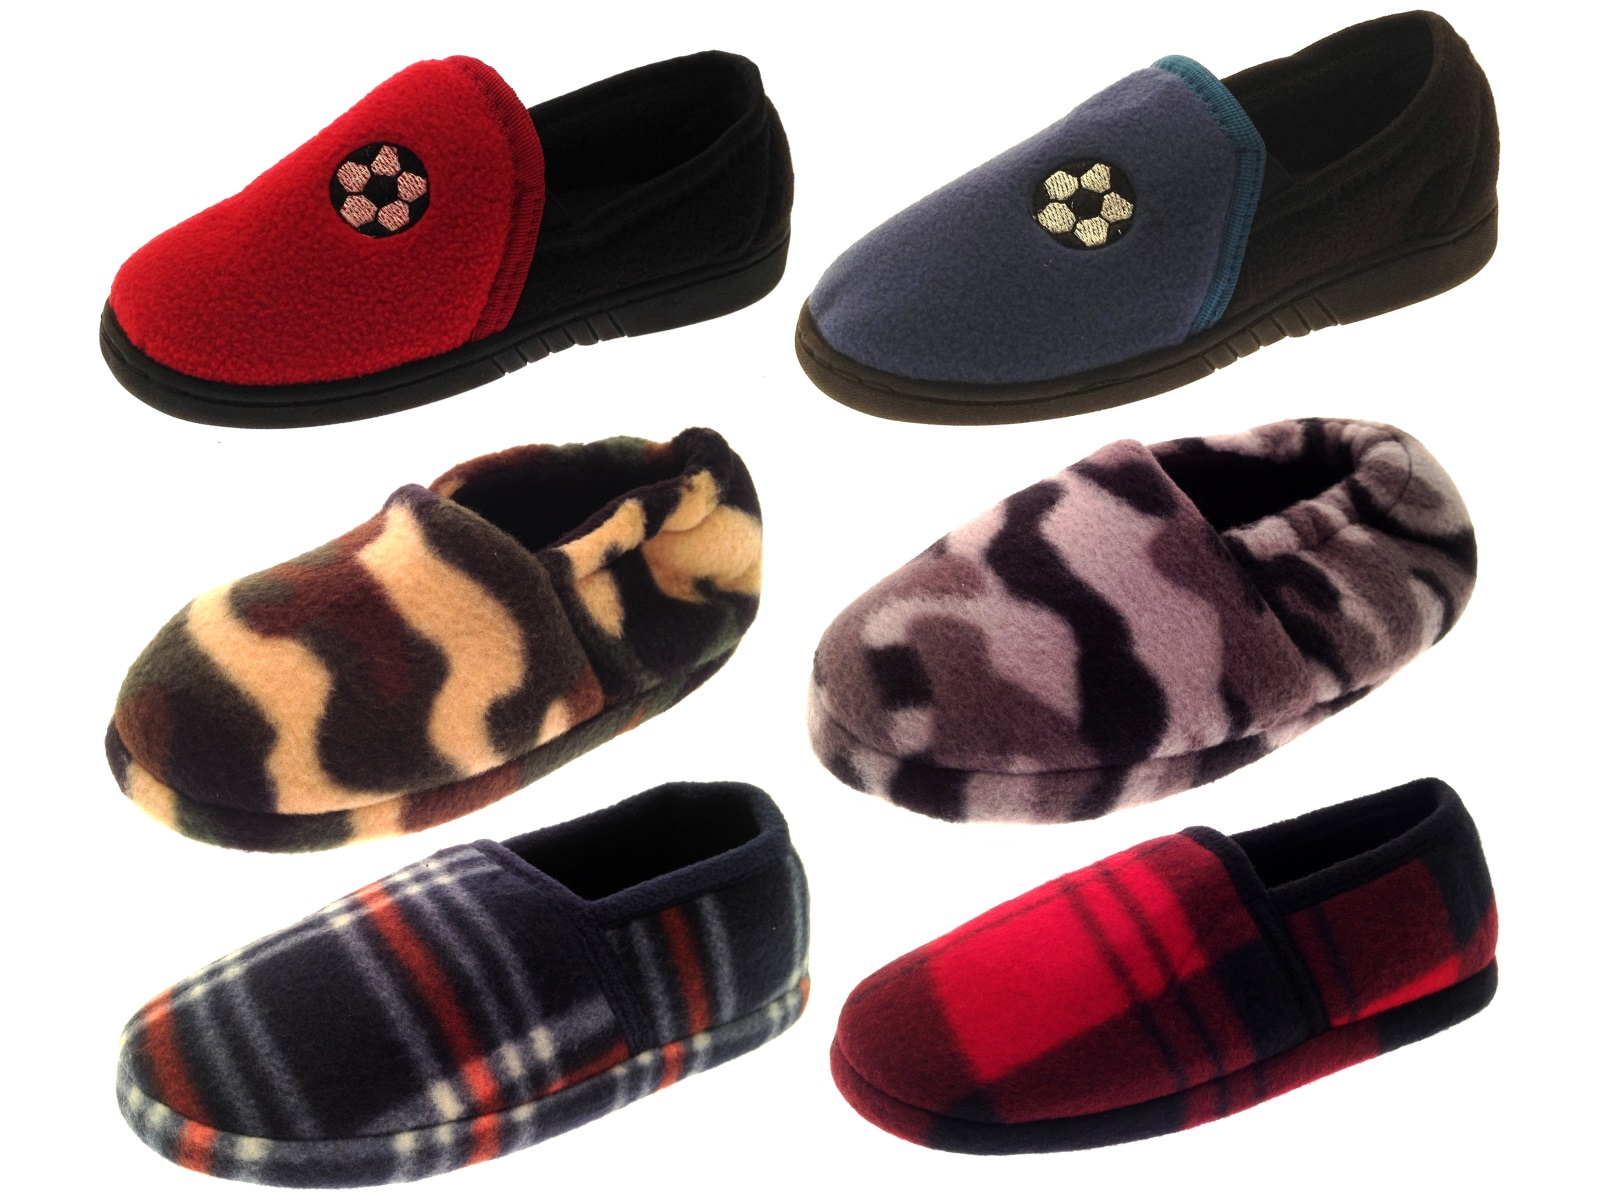 Boys Kids Soft Fleece Slippers Mules Camo/Football/Check Shoes Xmas Gift Size